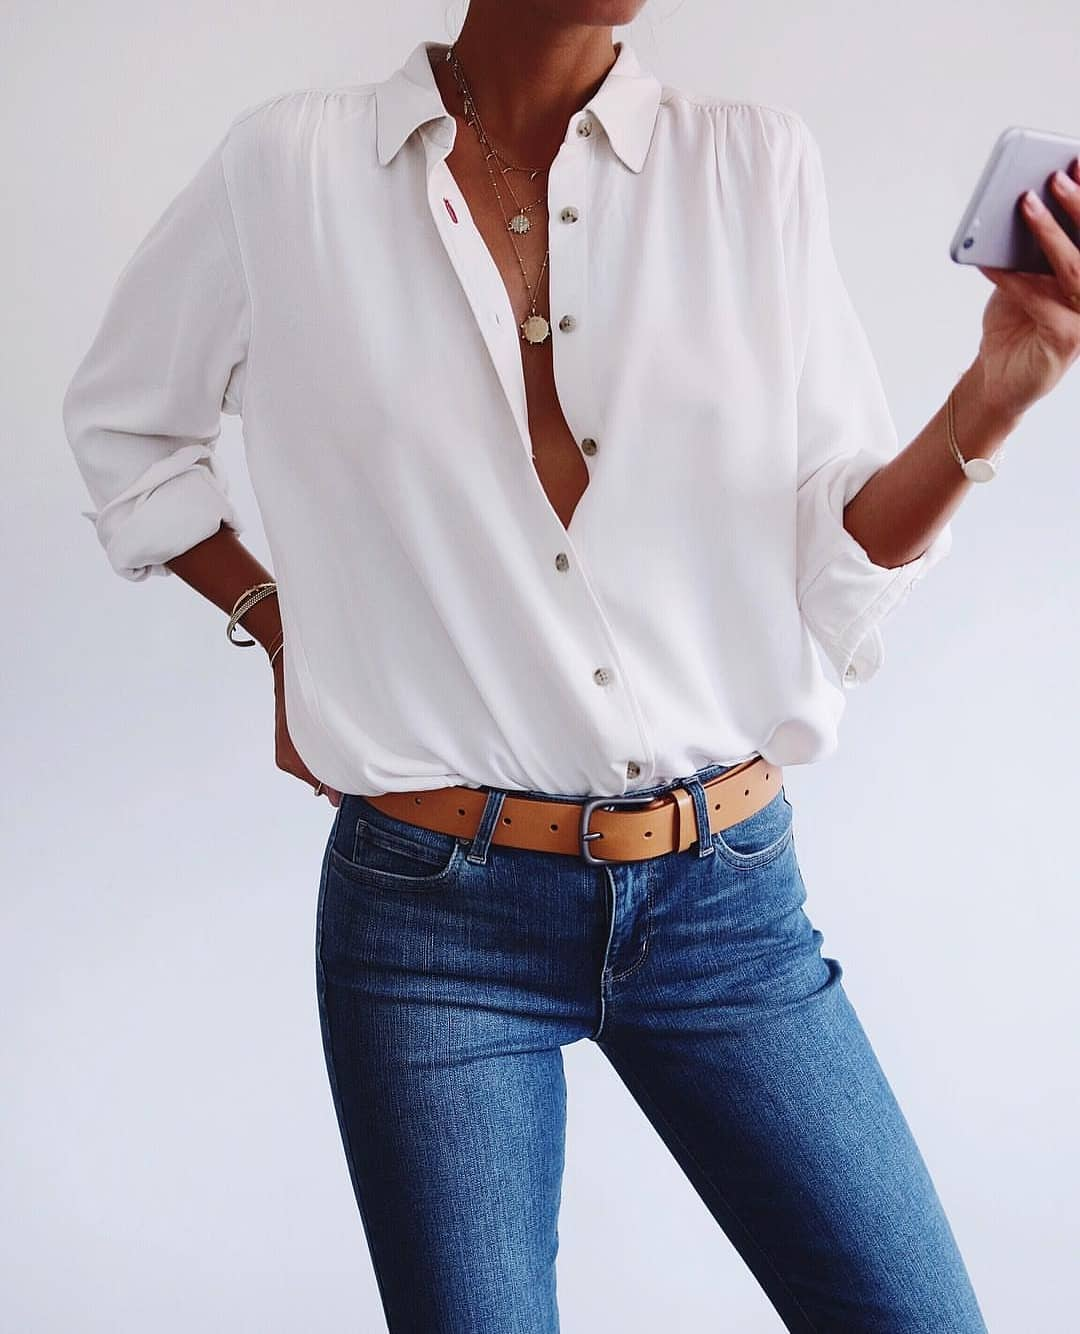 White Shirt And Blue Skinny Jeans: Classic Combo For Summer 2020